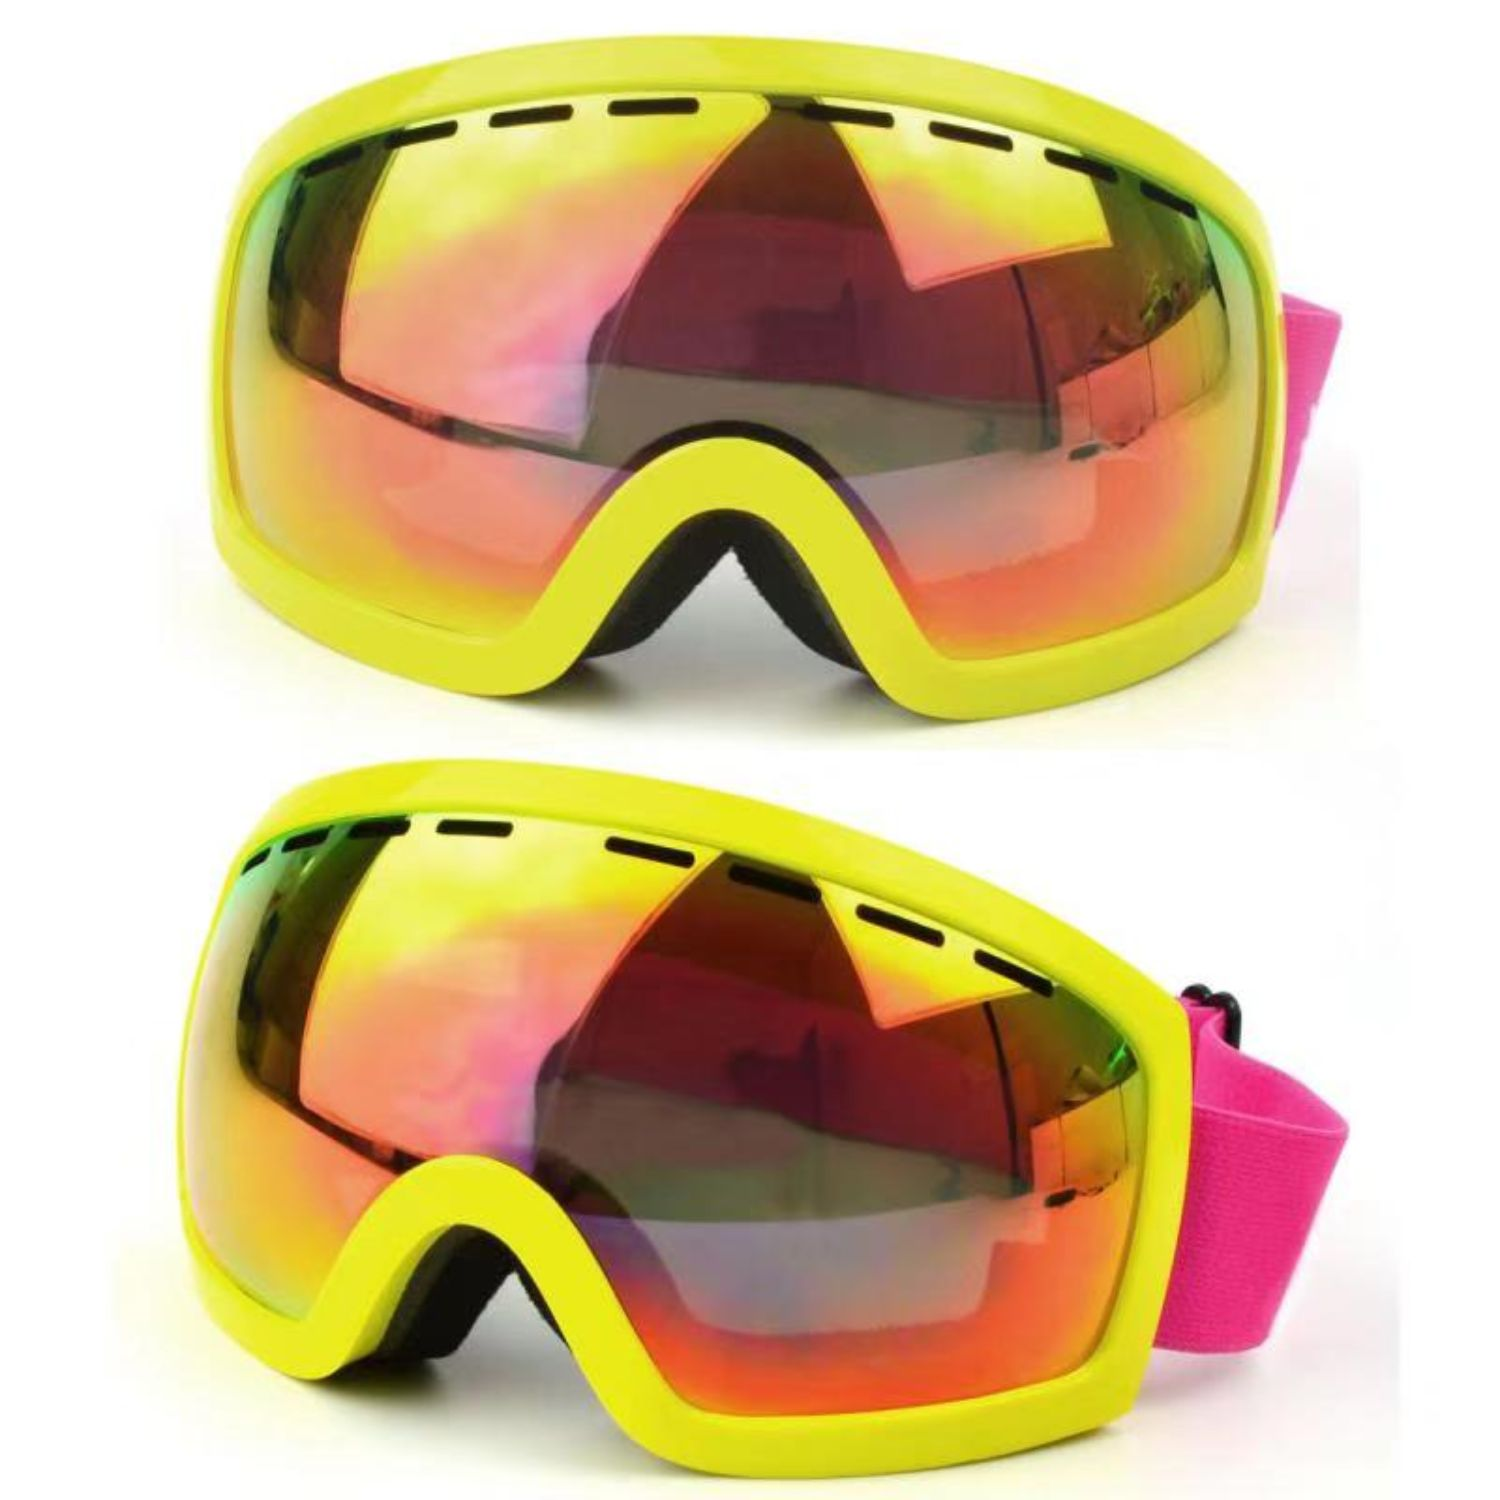 SG04 - Ski Snowboard Outdoor UV Protection Goggles for Men and Women - Iris Fashion Inc. | Wholesale Sunglasses and Glasses